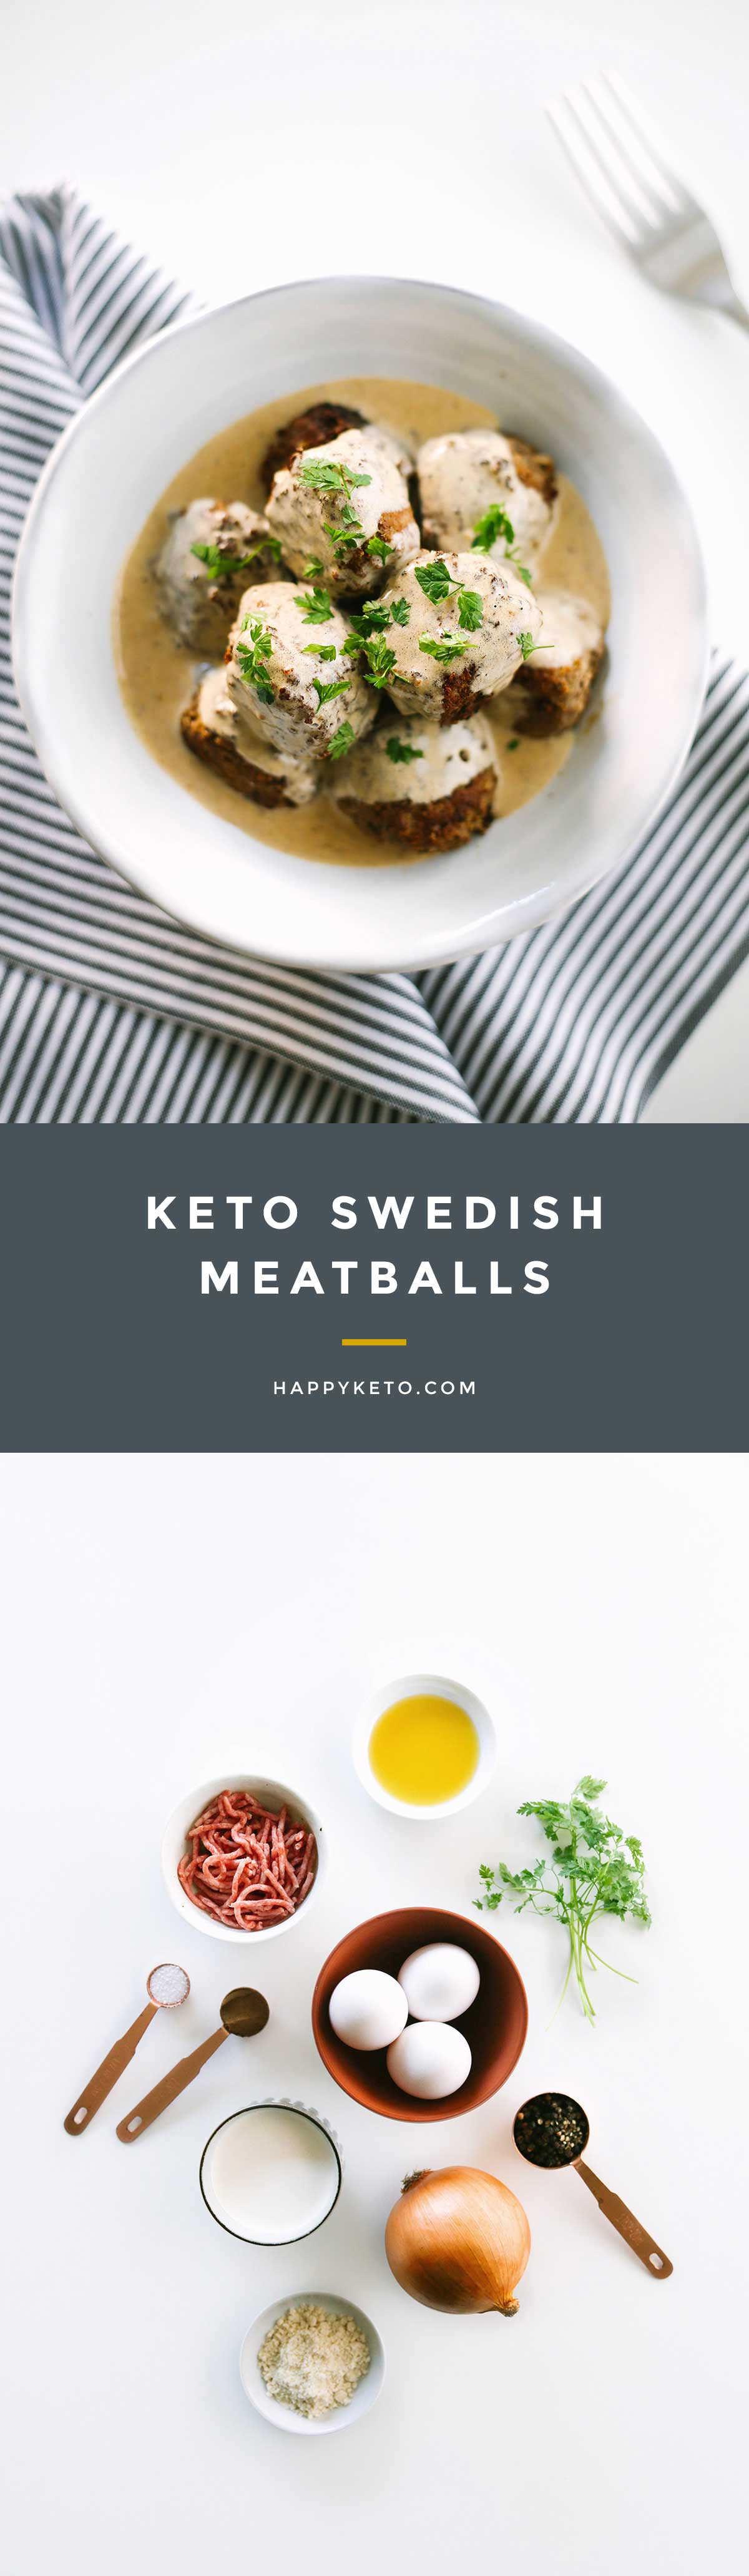 Swedish meatballs for keto and low carb. Easy recipe with allspice and gravy.